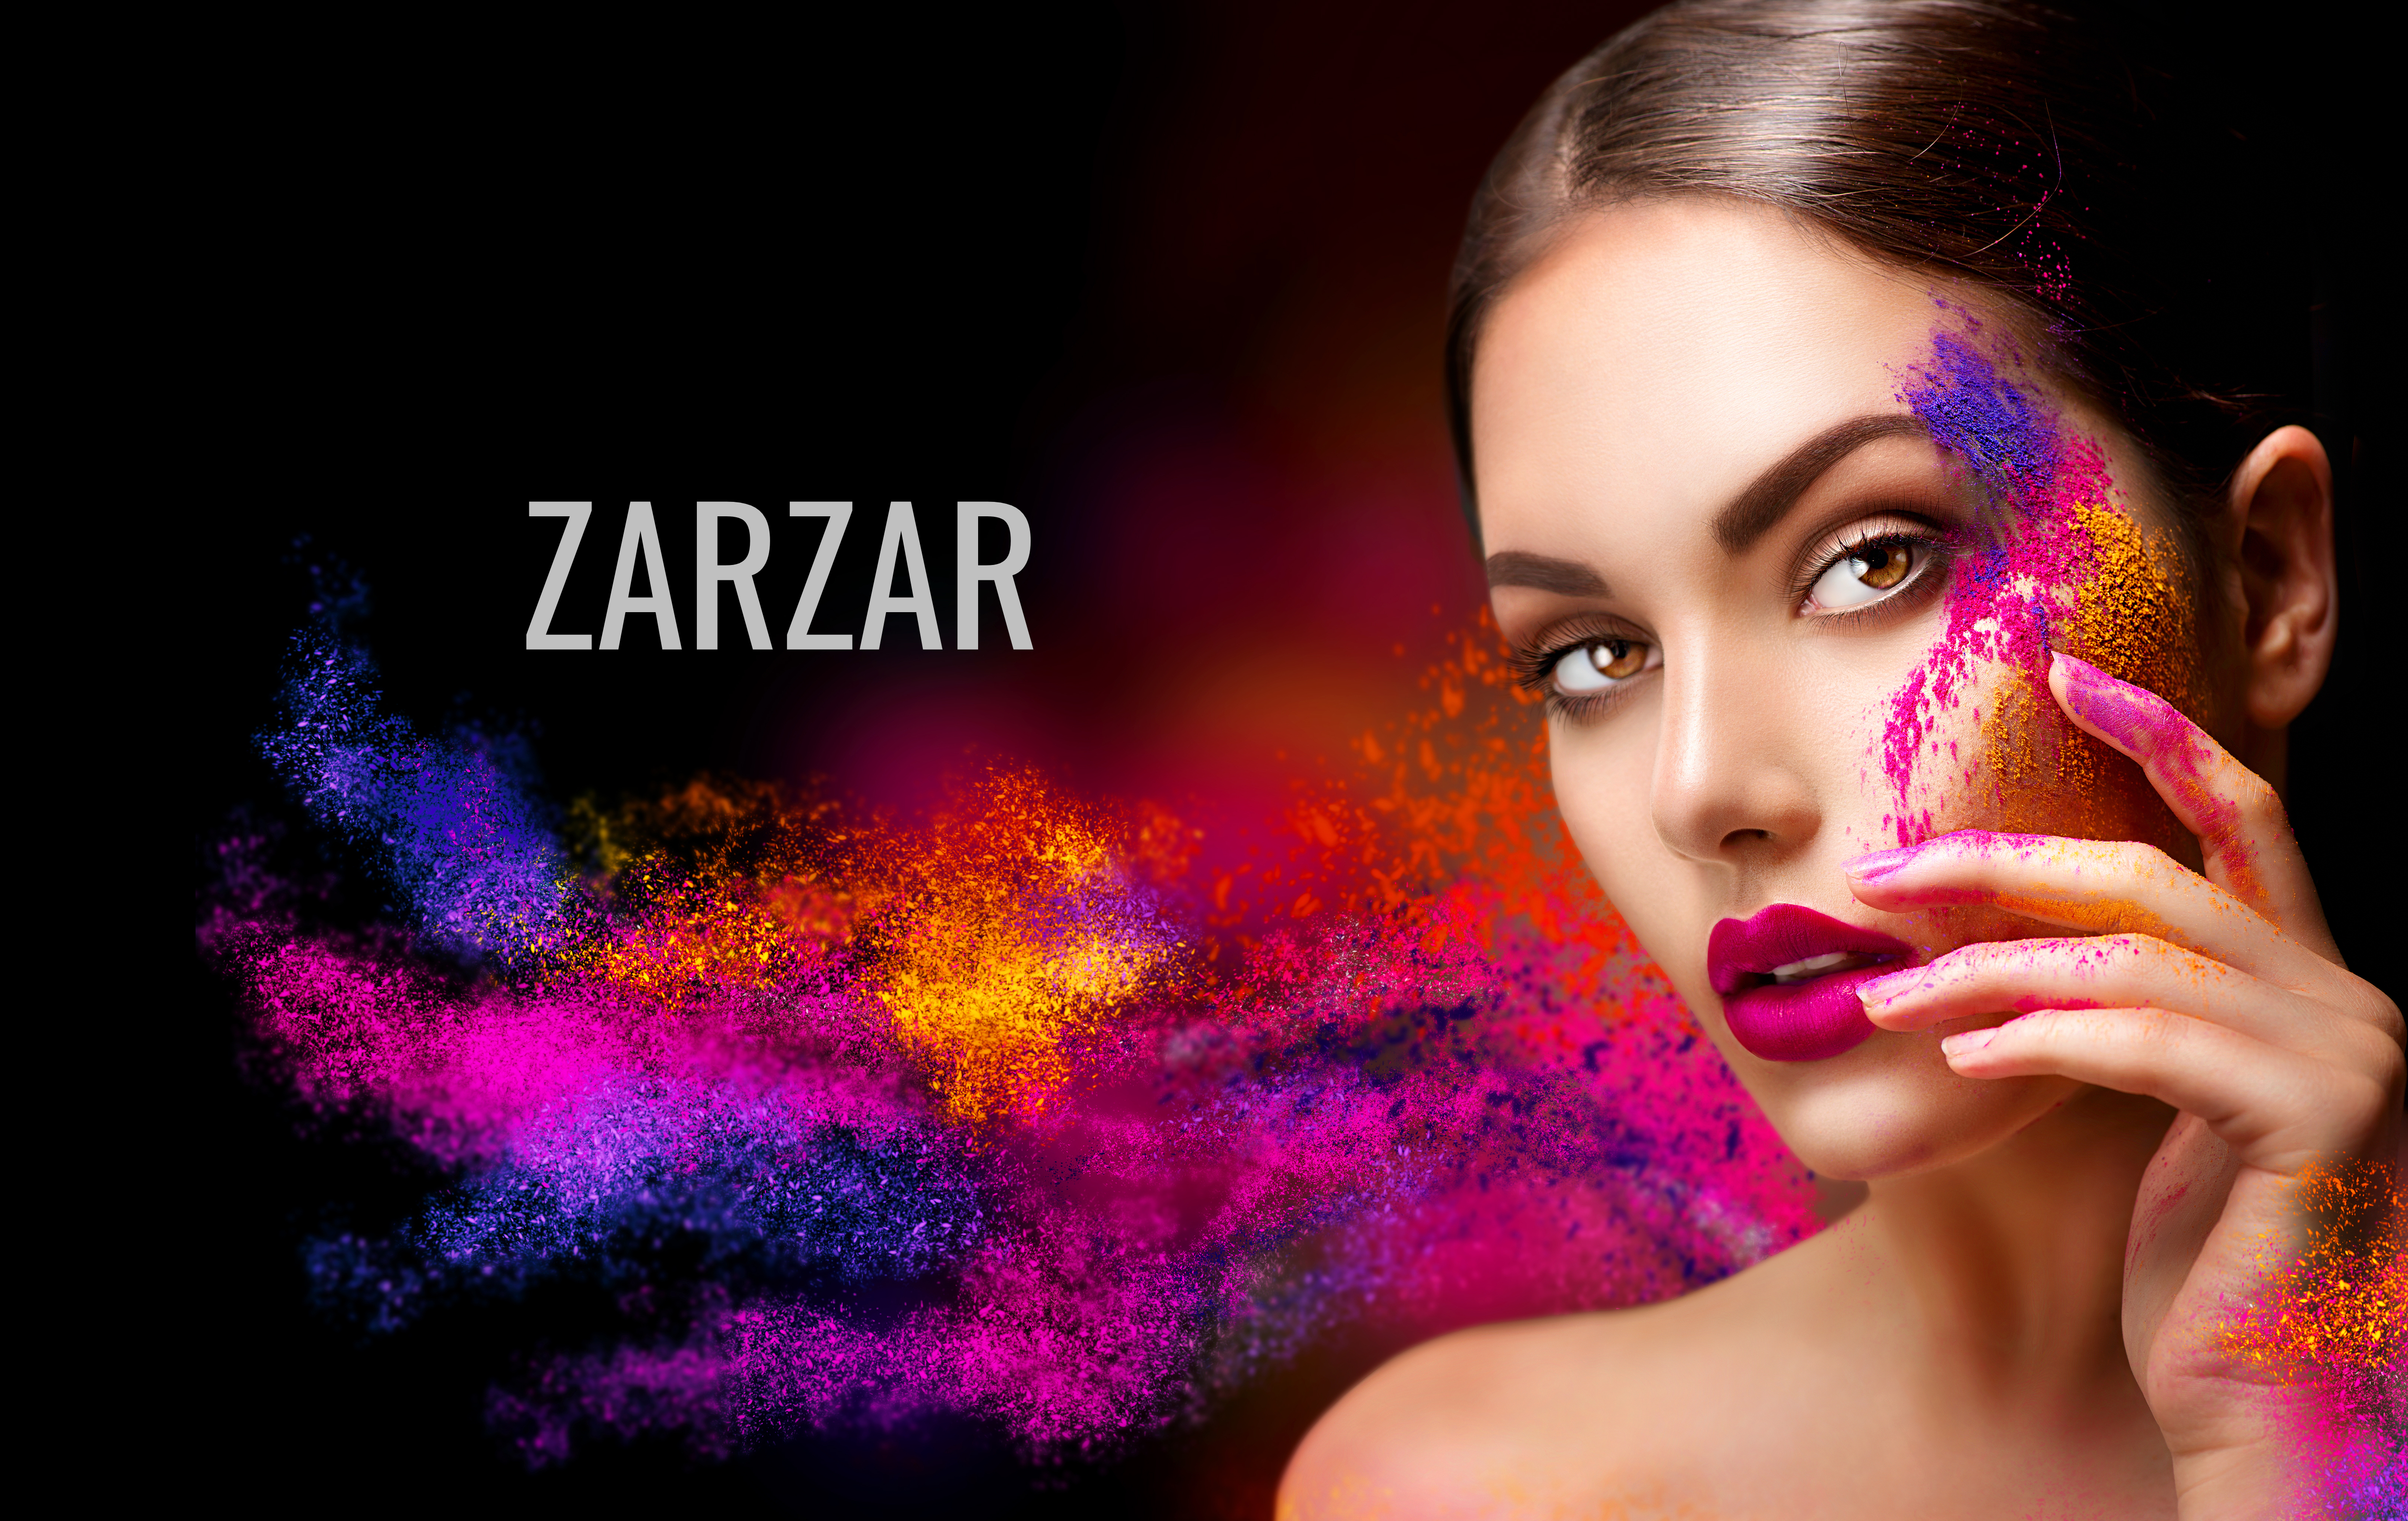 ZARZAR FASHION Beautiful Model Modeling For Beautiful Makeup Ads (Beautiful Makeup Advertisements). Sexy Makeup For Women (Cute Makeup For Girls).